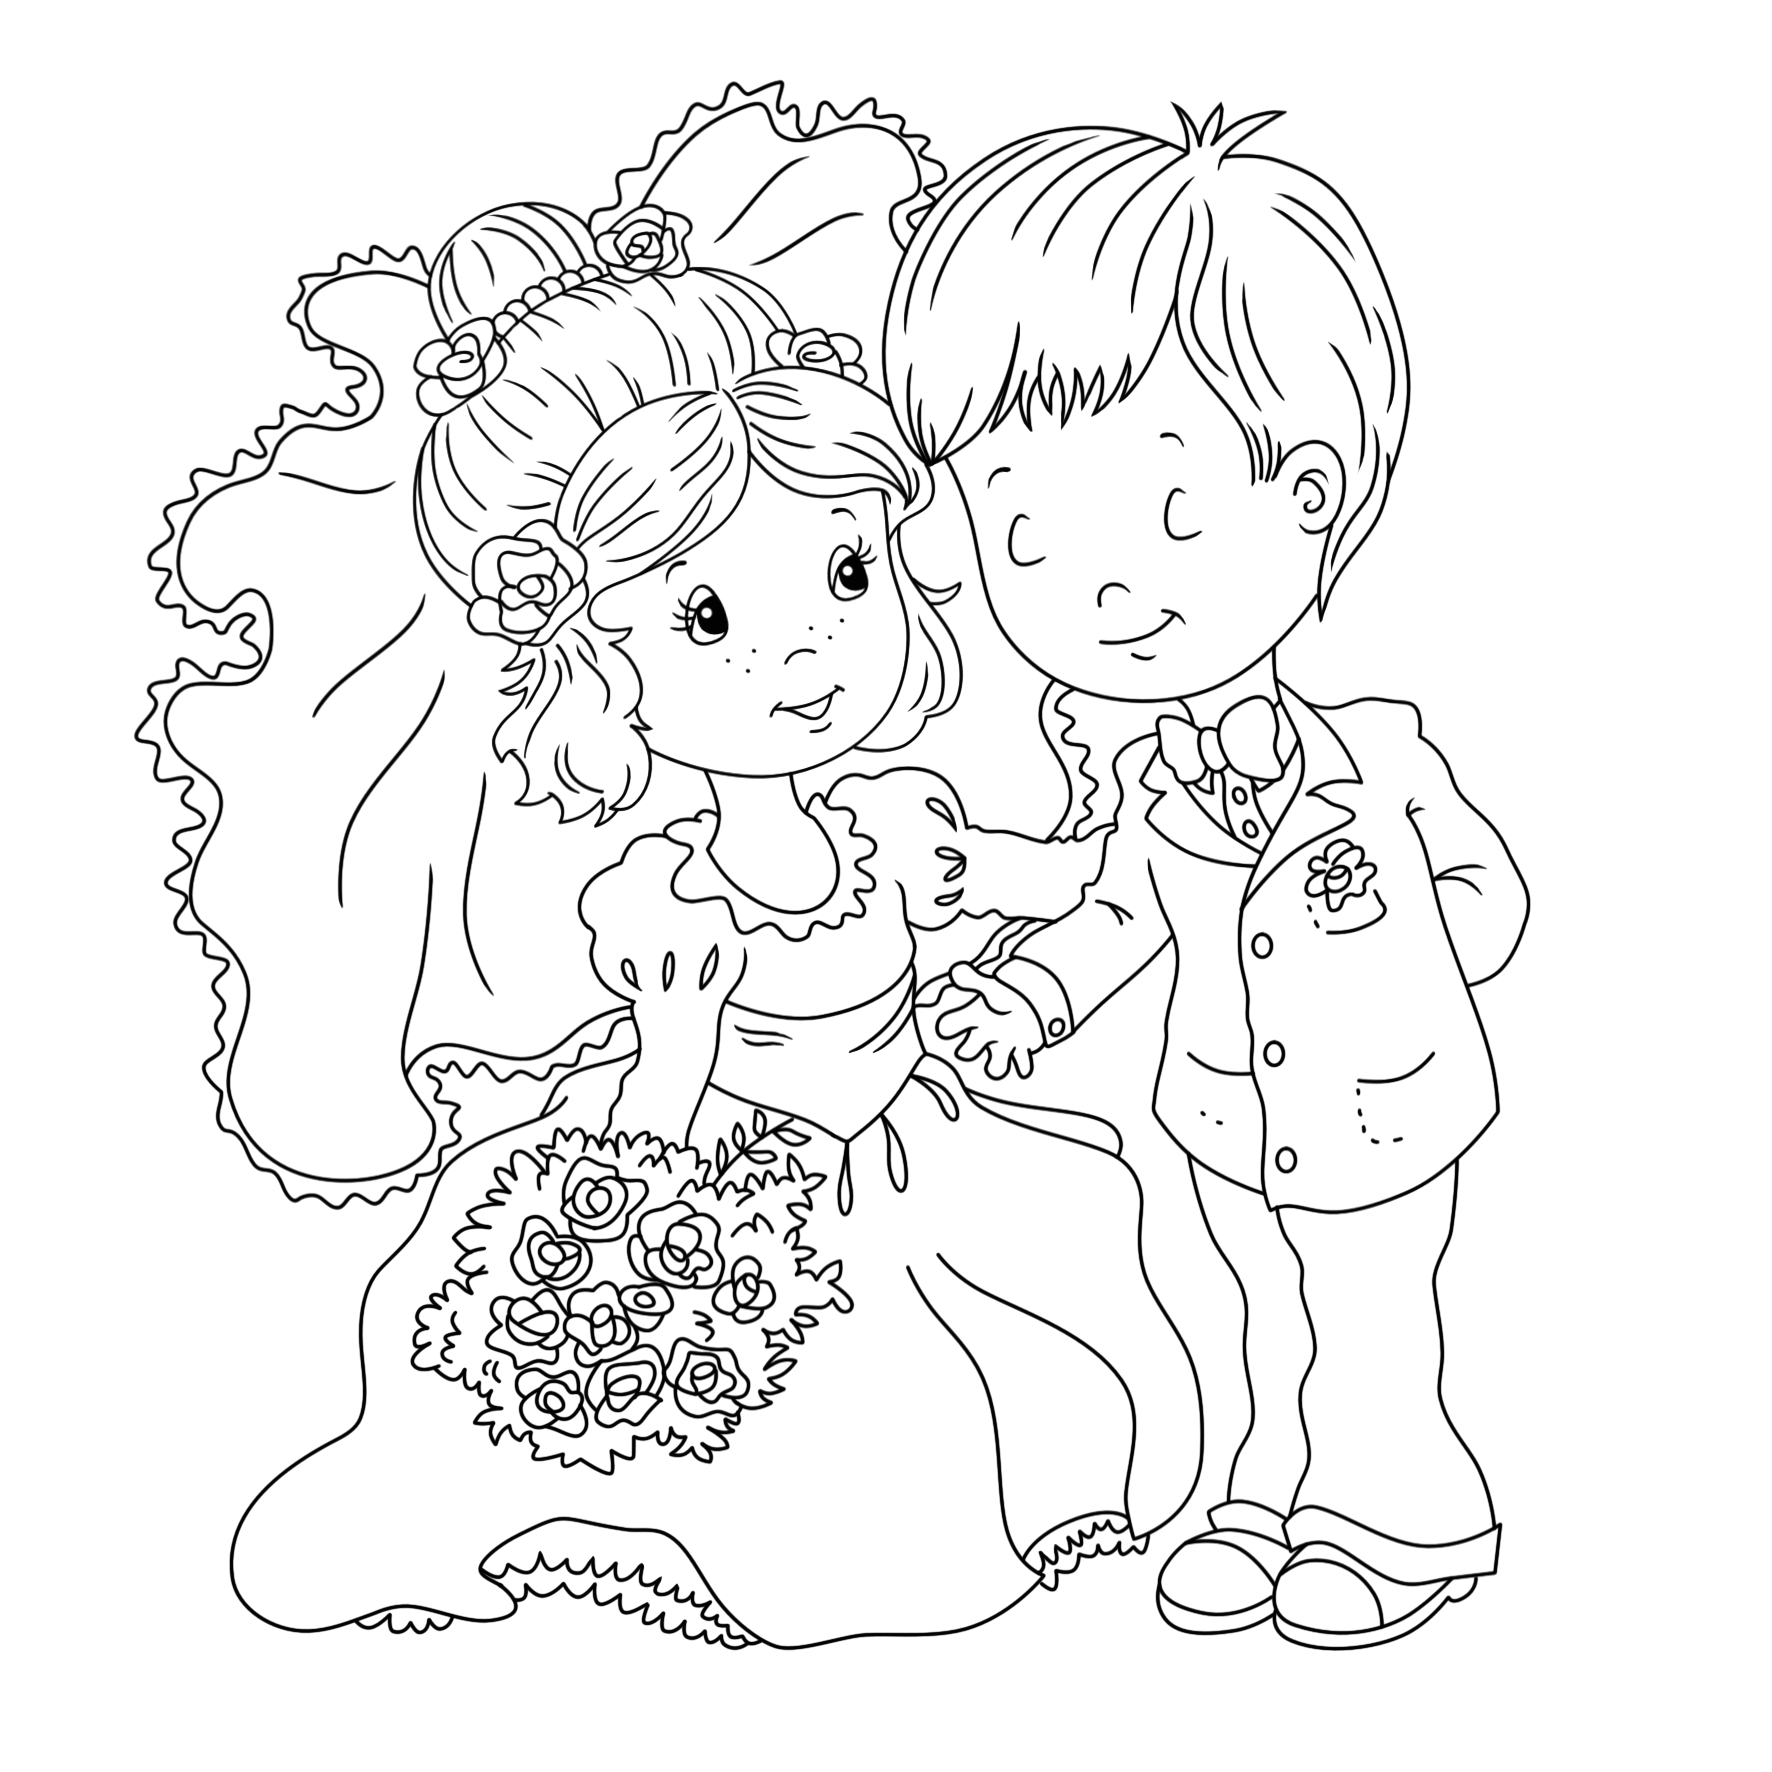 Free Printable Wedding Coloring Pages for Kids Wedding Coloring Pages Best Coloring Pages for Kids